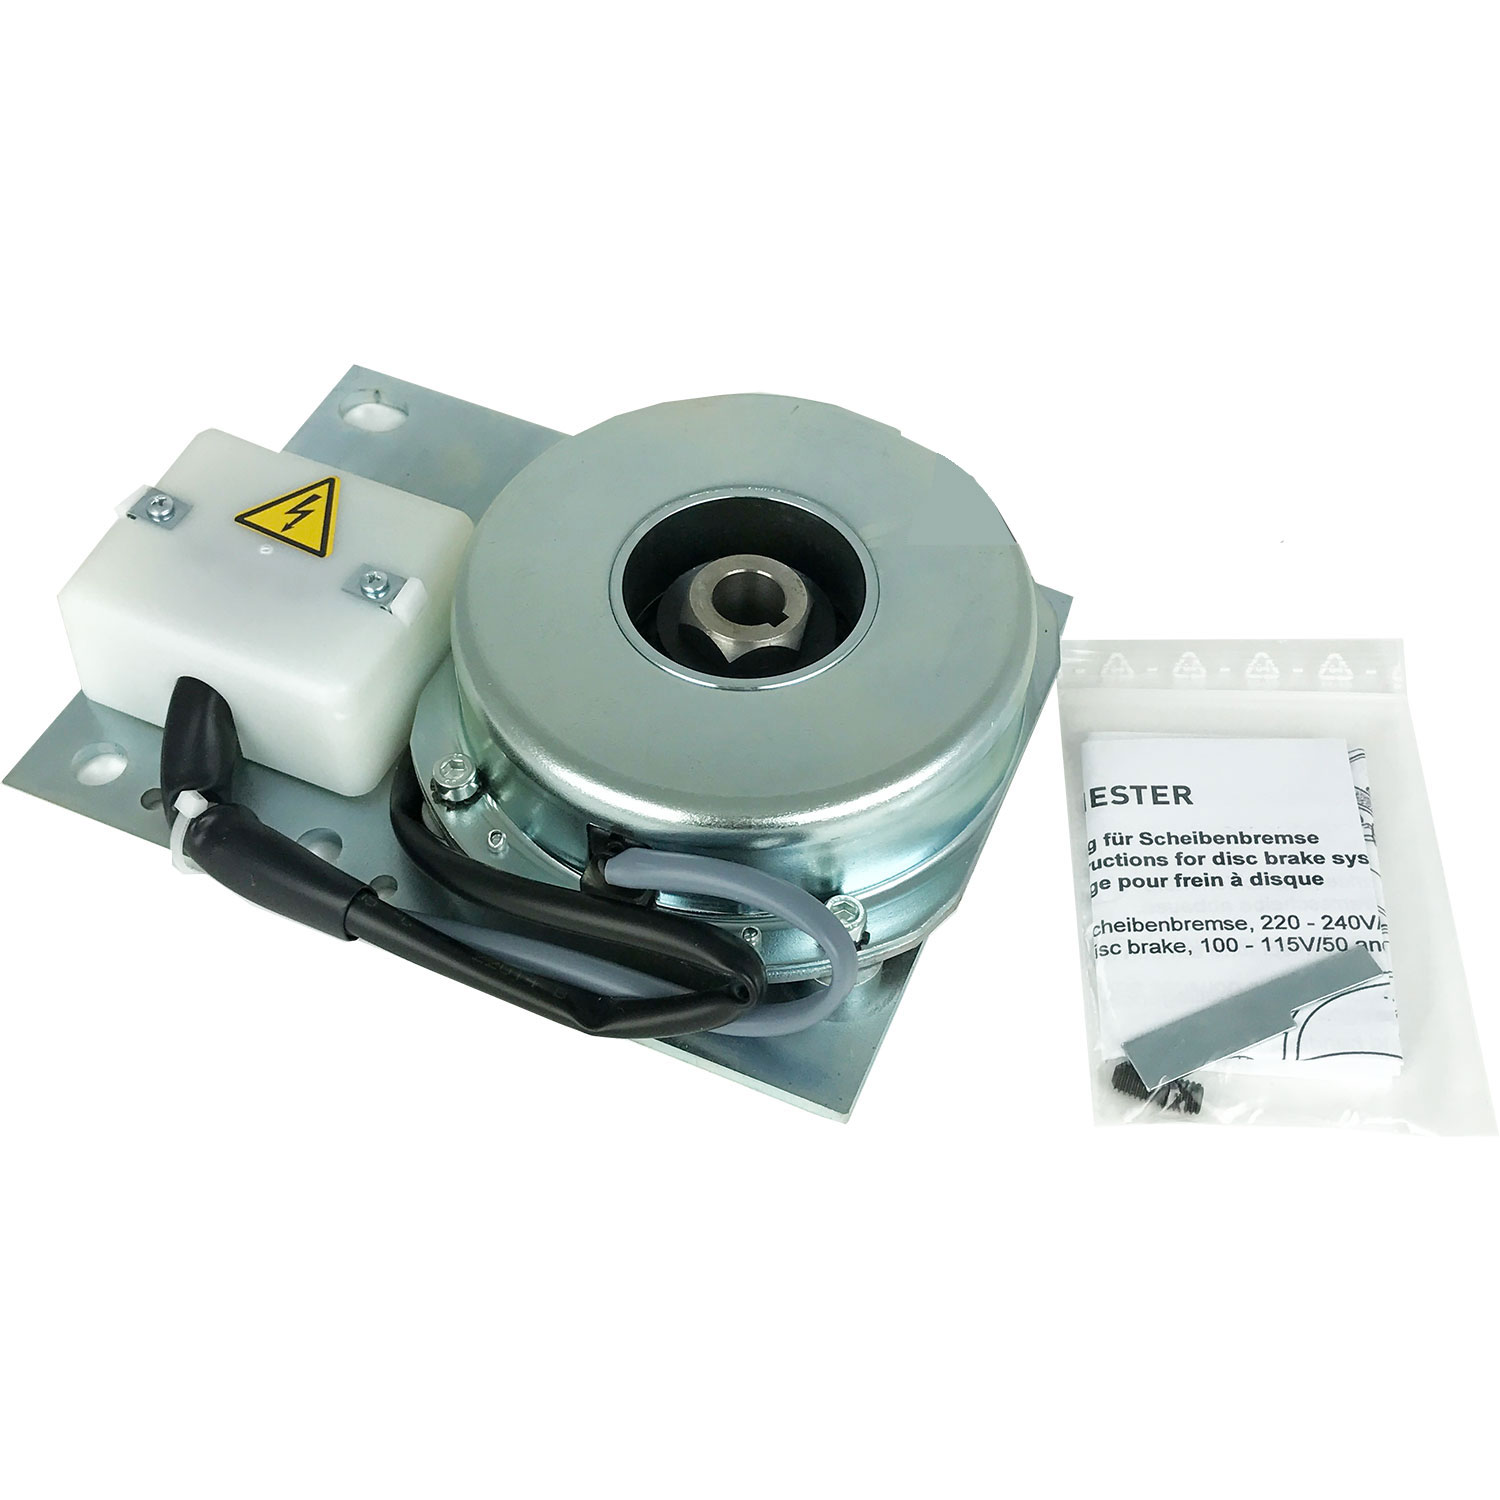 IDEAL / EBA Guillotine Disc Brake Unit Complete 220/240V